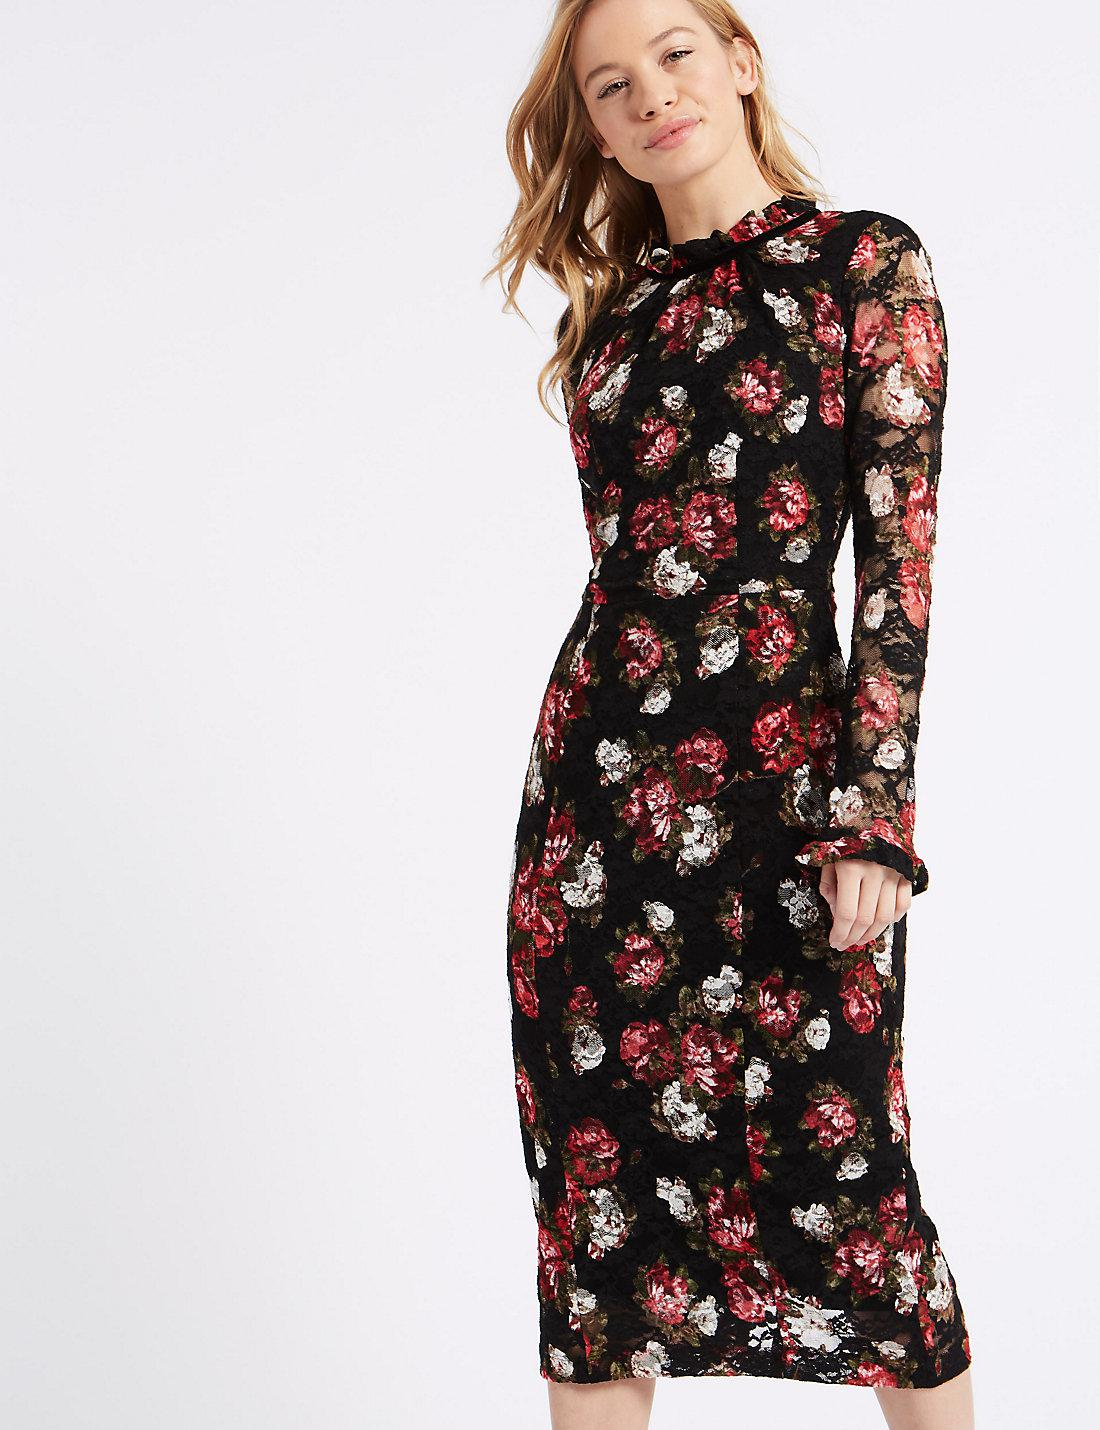 Brand New Ex Marks And Spencer Navy Black Floral Long Sleeve Dress Size 6-22